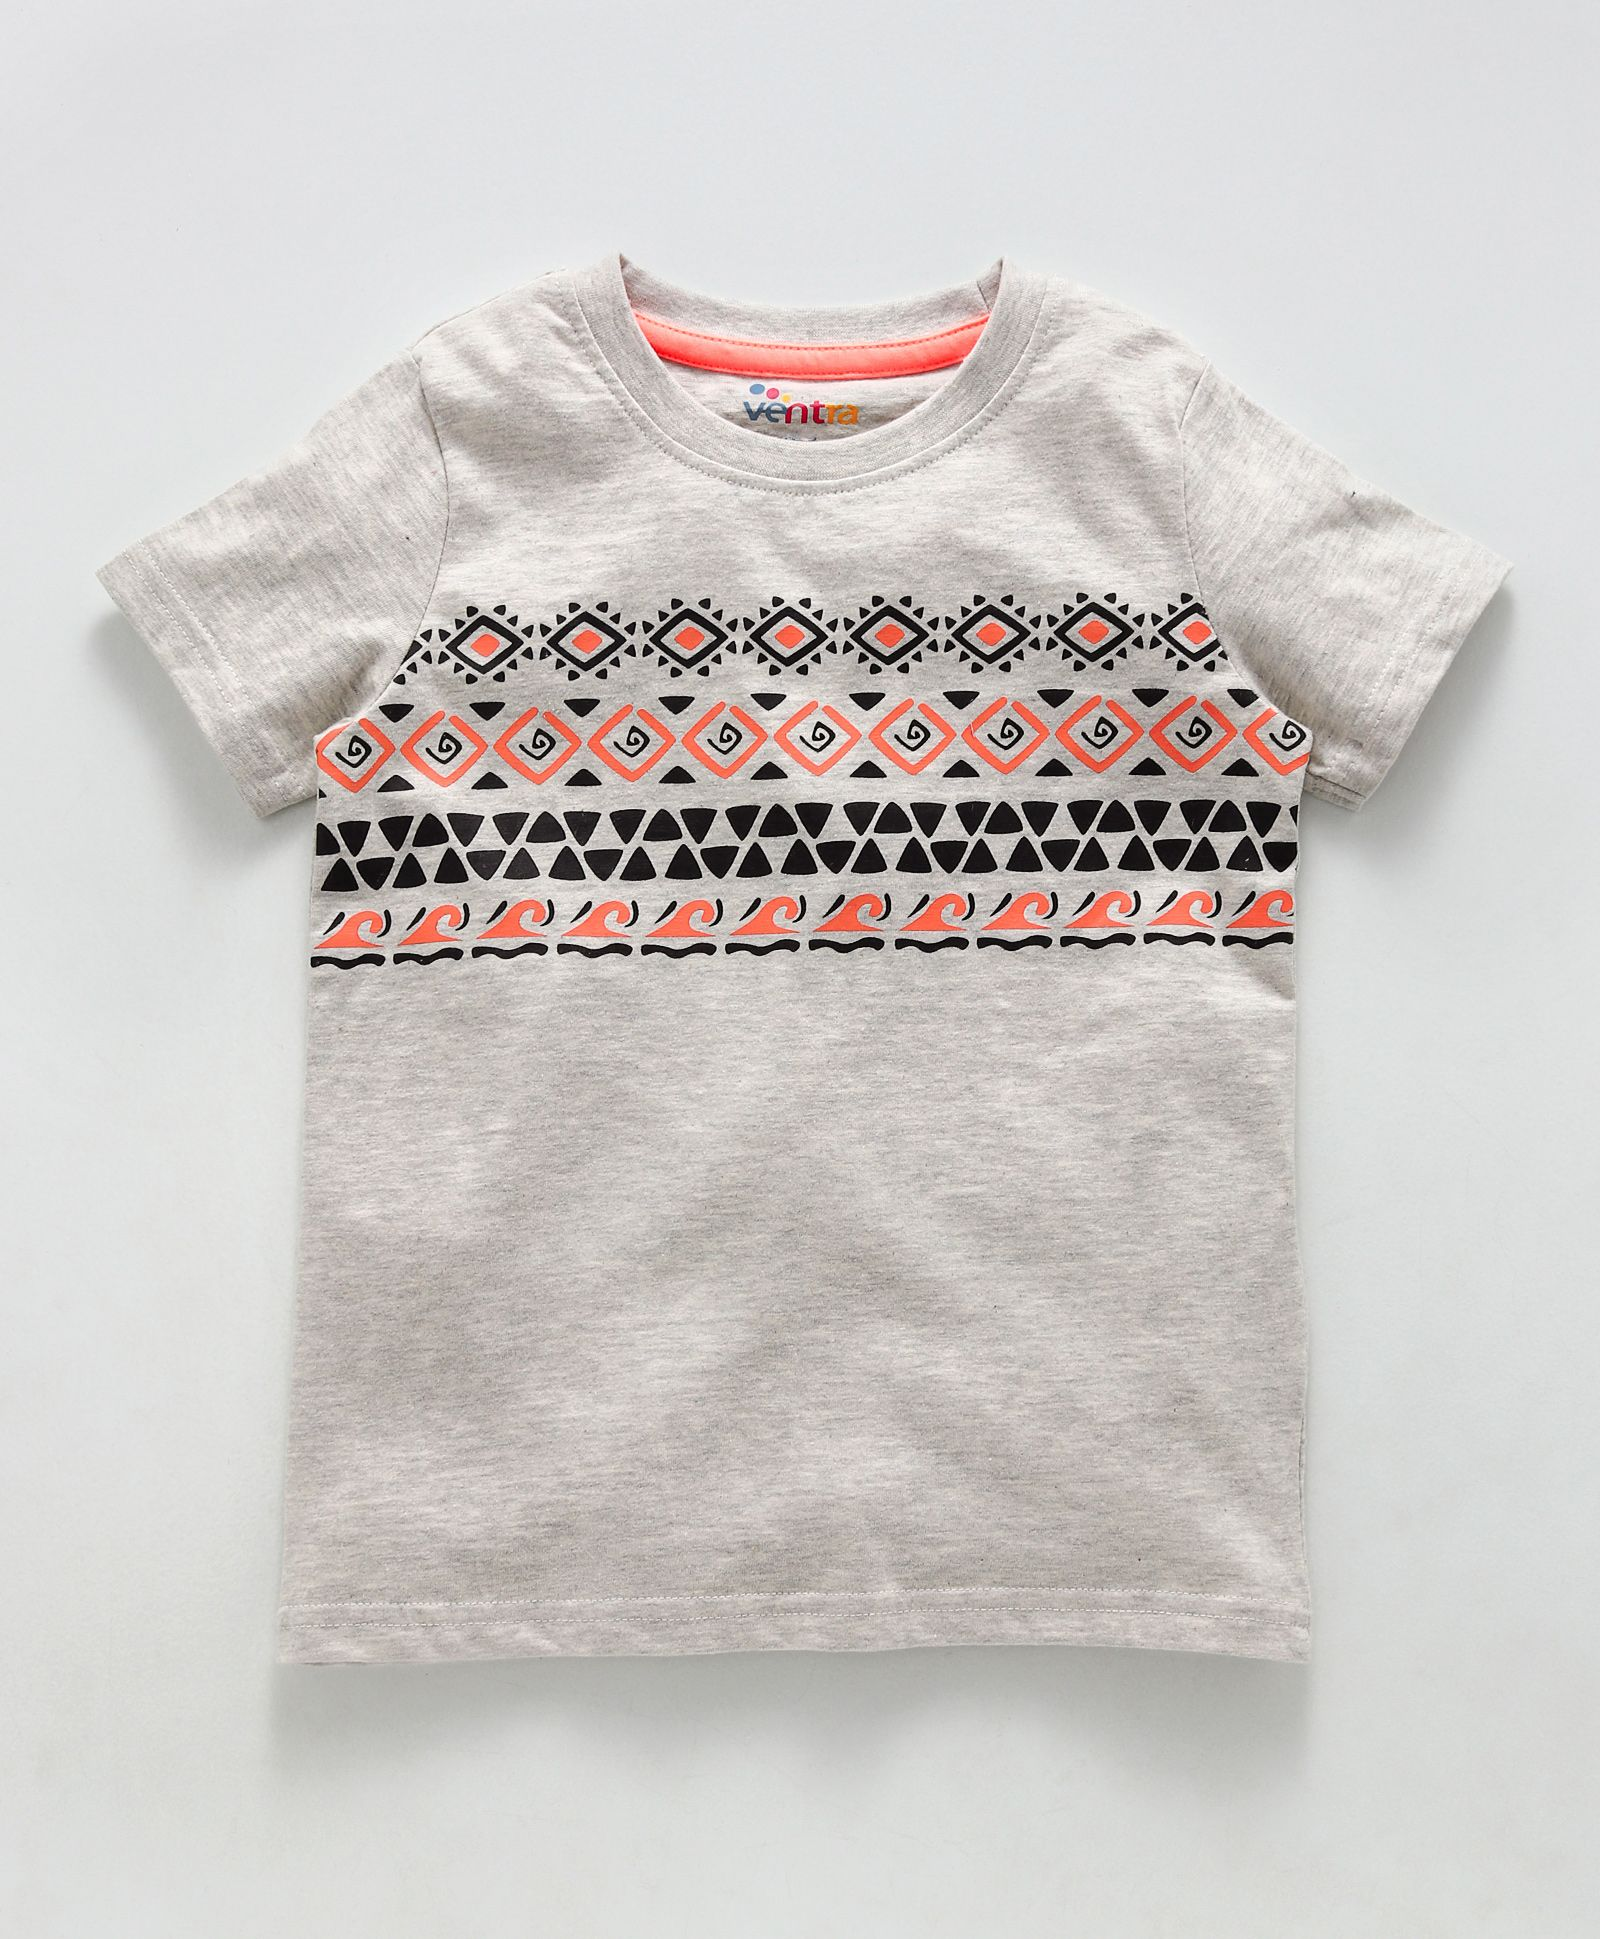 68a93d48 Buy Ventra Abstract Design TShirt Grey for Boys (3-4 Years) Online in ...